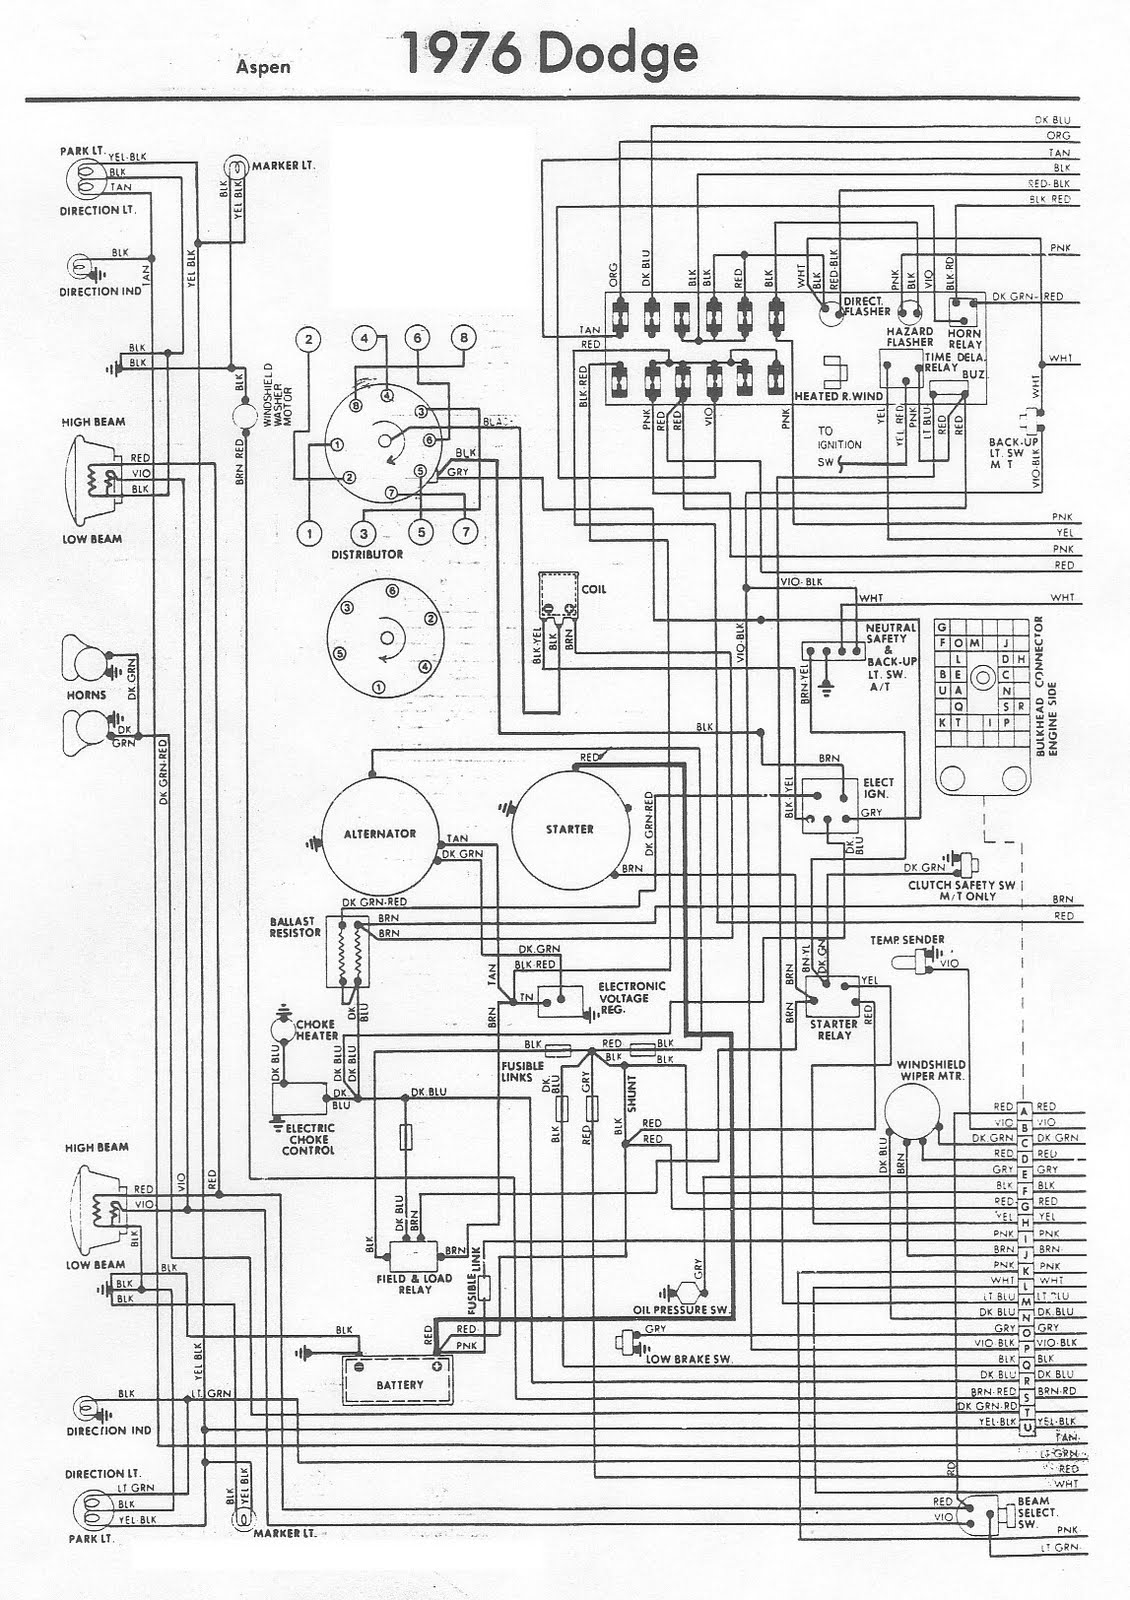 76_Dodge_Aspen_Engine_wiring free auto wiring diagram 1976 dodge aspen engine compartment Trailer Wiring Harness Chrysler at gsmportal.co